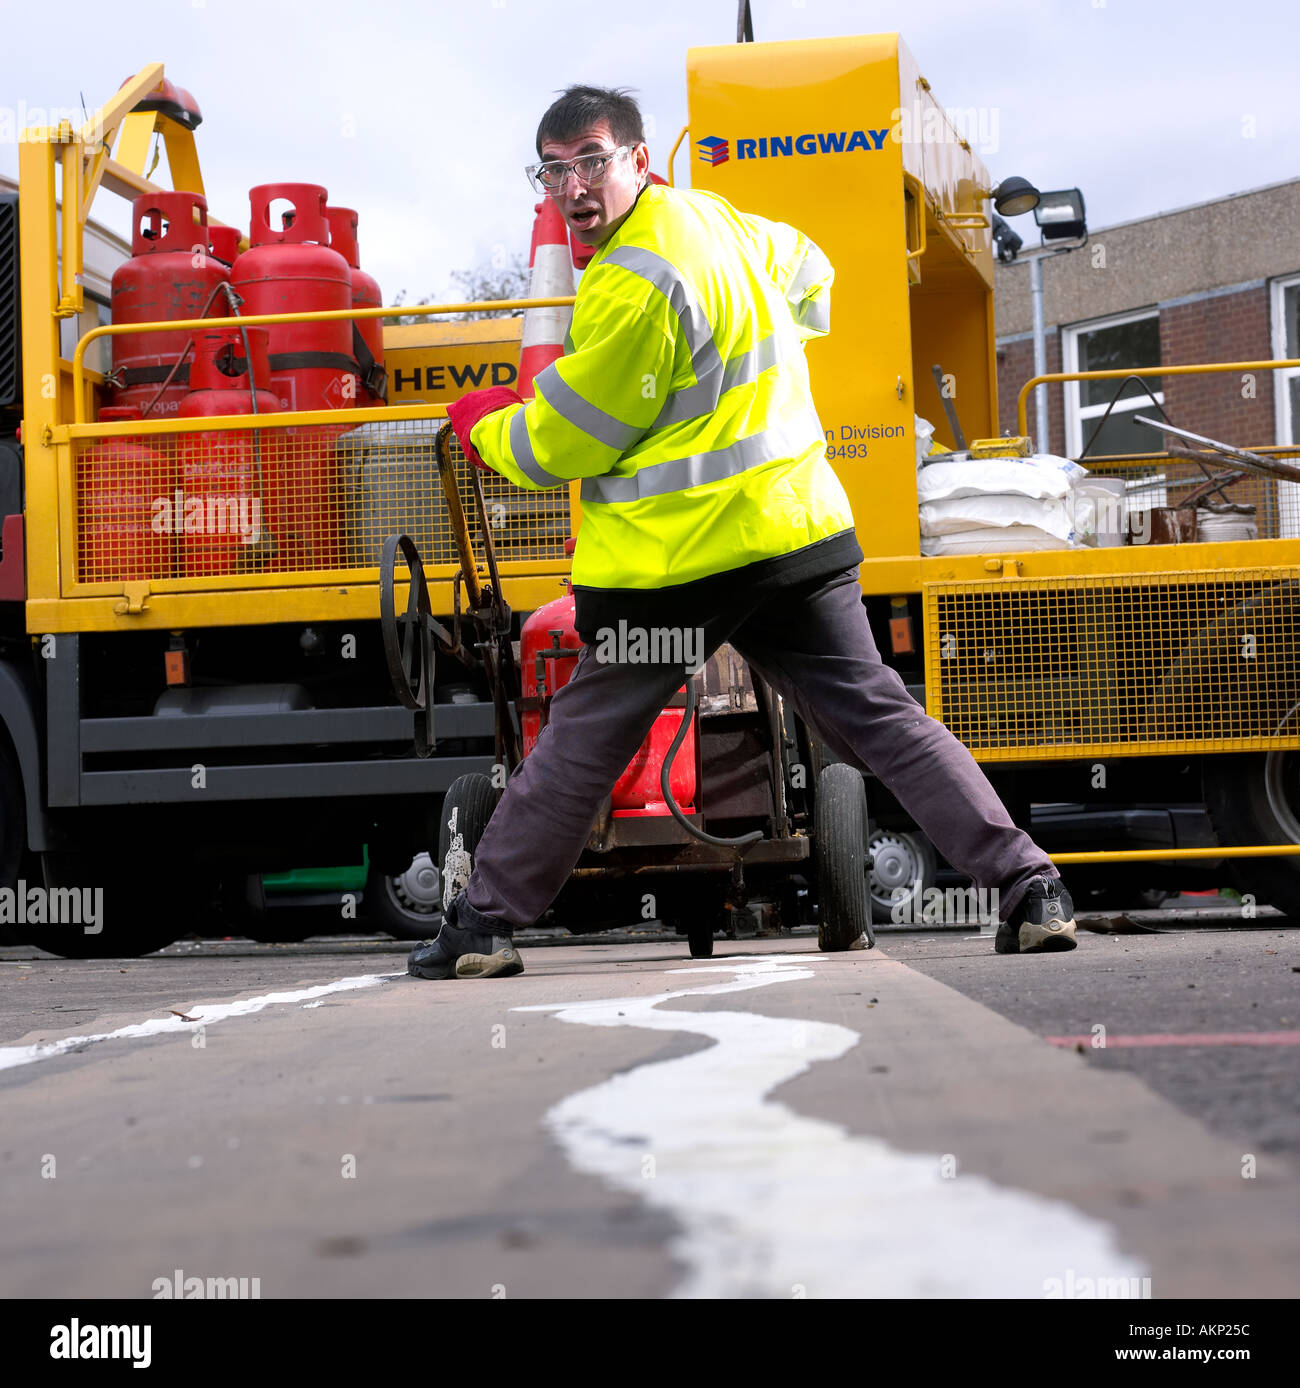 Road sign painting done badly - Stock Image